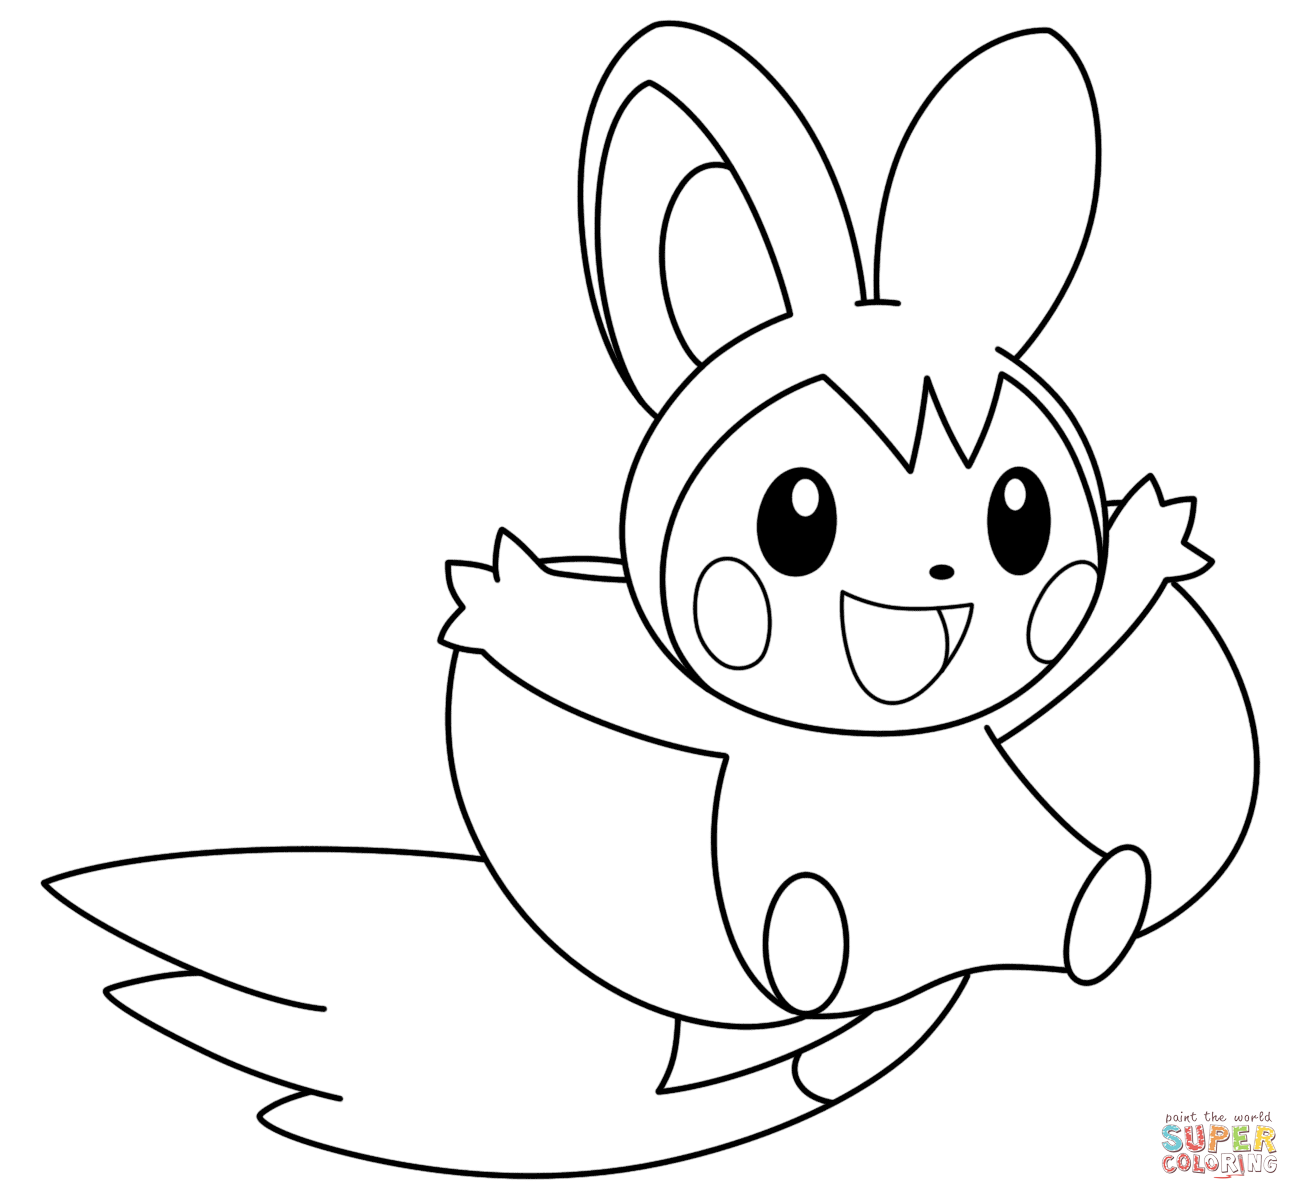 pictures of pokemon characters coloring pages | Pokemon Characters Drawing at GetDrawings.com | Free for ...